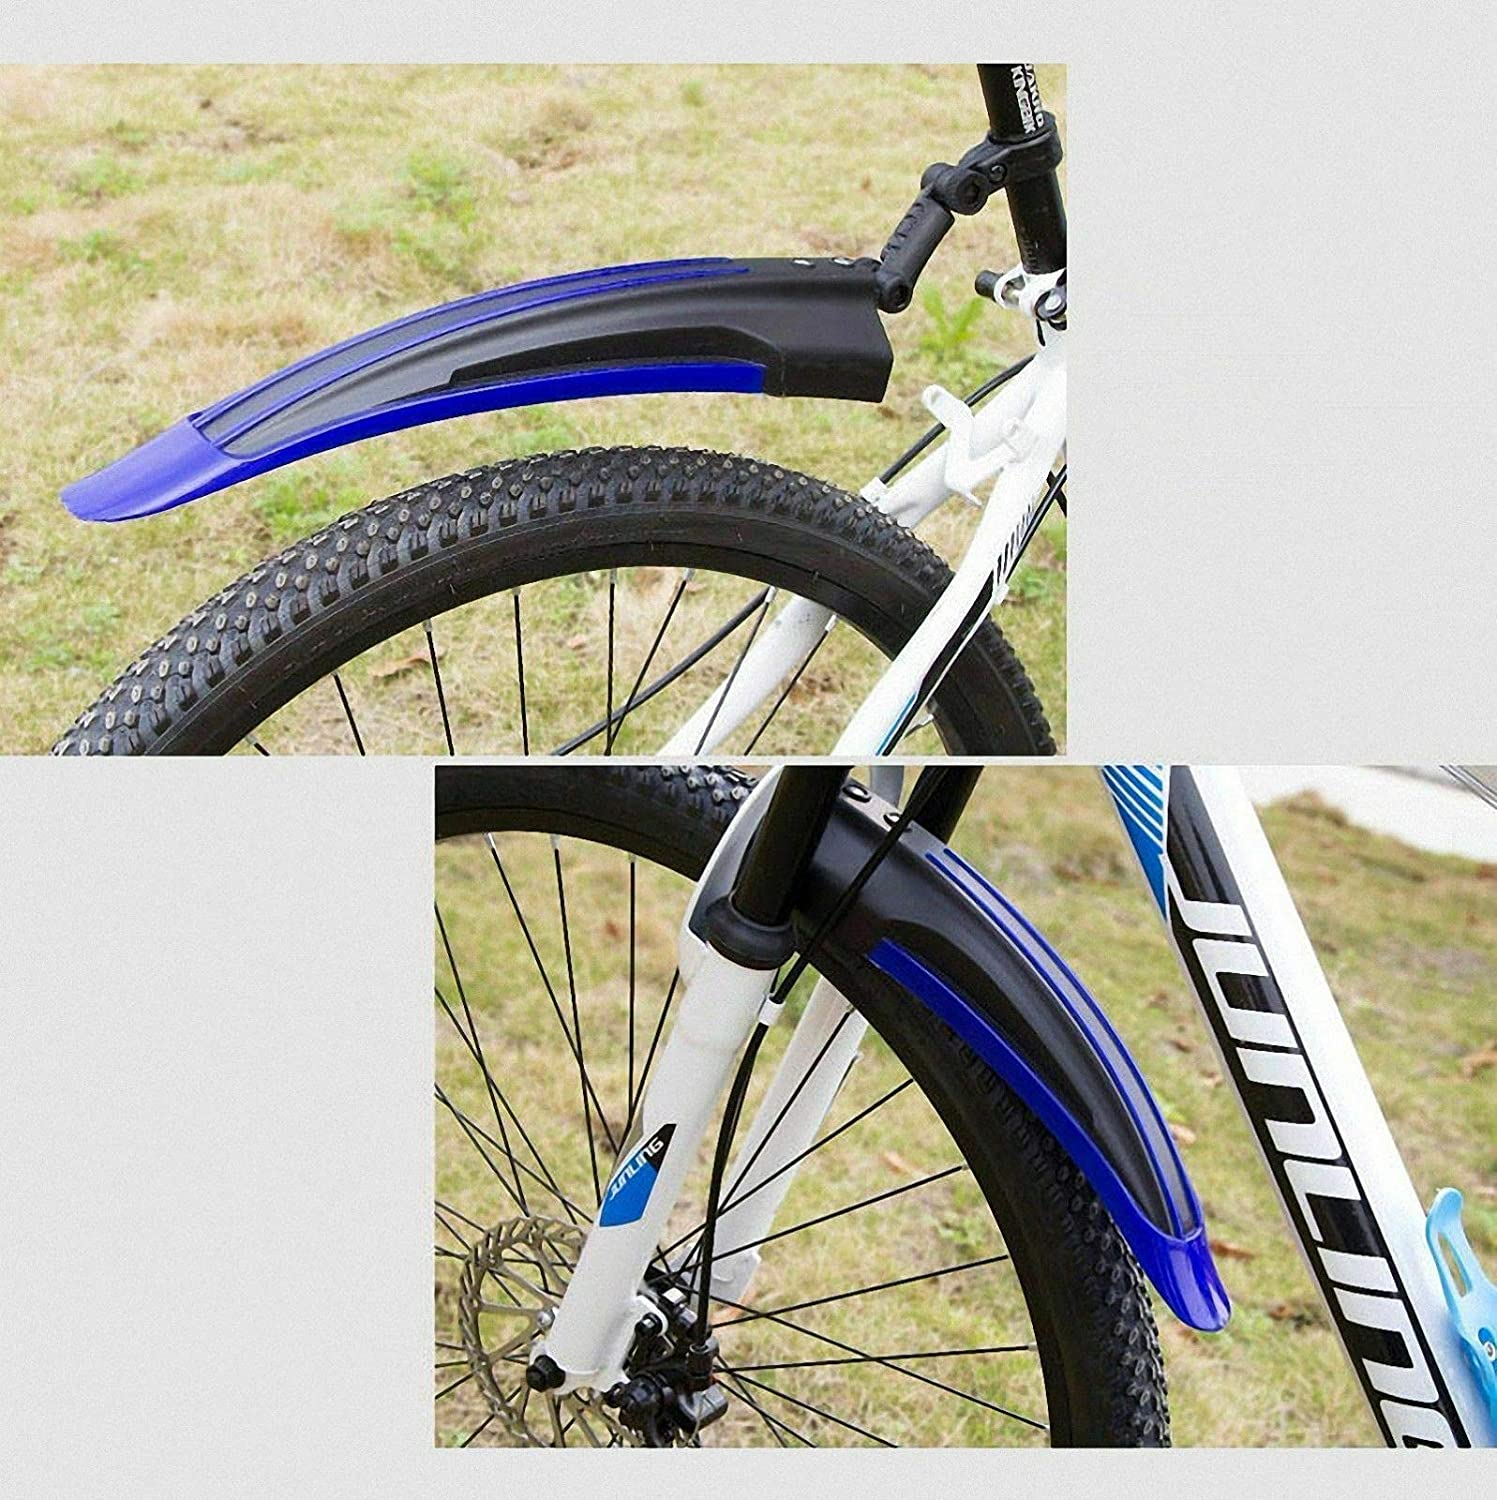 Riloer 2 Pcs Bicycle Fenders,Mountain Road Bike Mudguard,Front Rear Mud Guards Fender for Cycling Tire Cycling MTB Bike